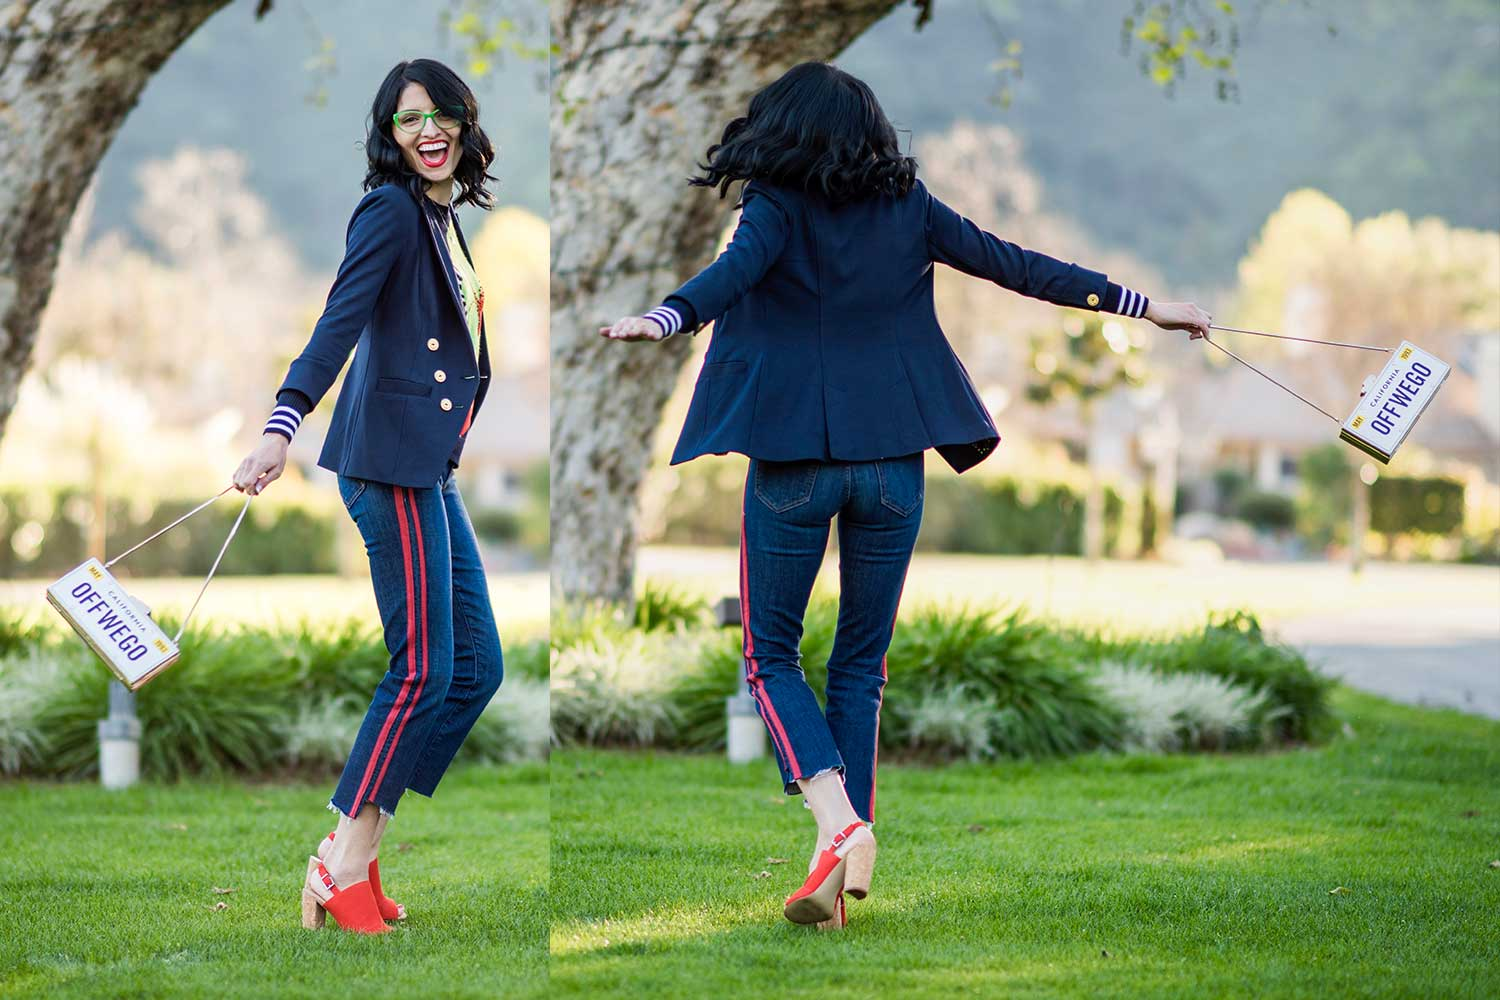 Jenna-Pilant-Style-Blogger-San-Diego-Lucky-Little-Mustardseed-Cabi-Clothing-Grand-Slam-Blazer-4